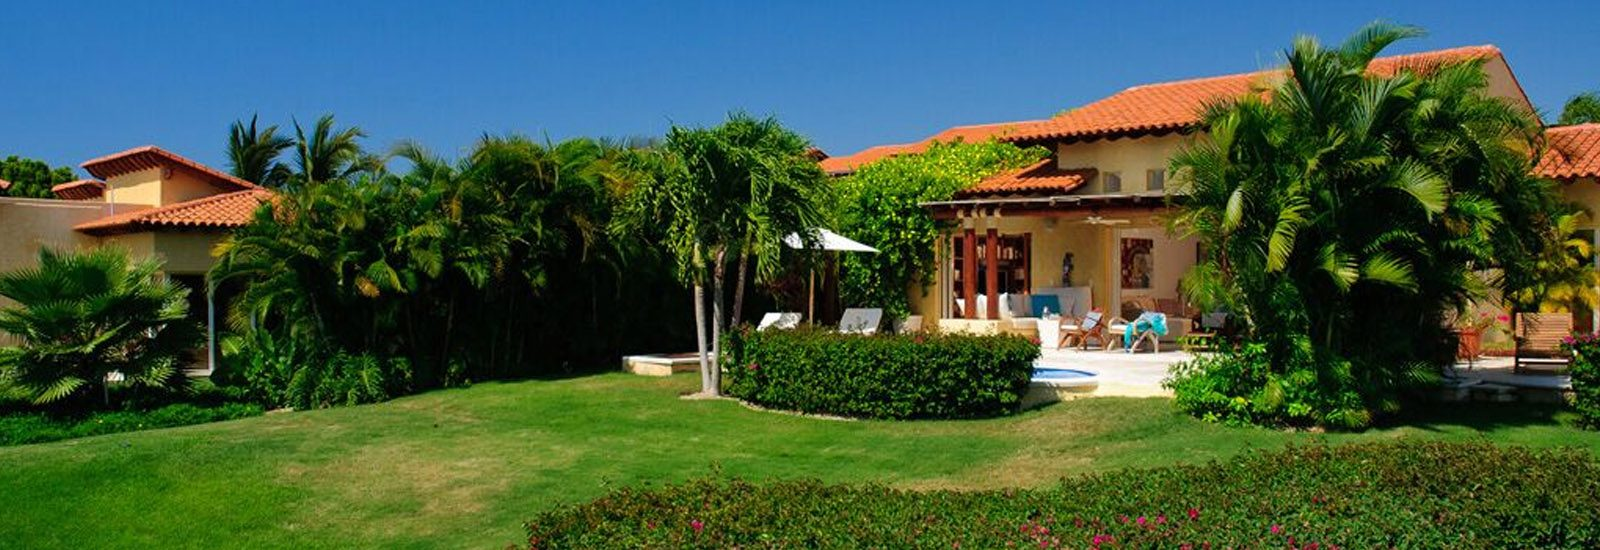 villa clemente - punta mita | journey mexico luxury villas